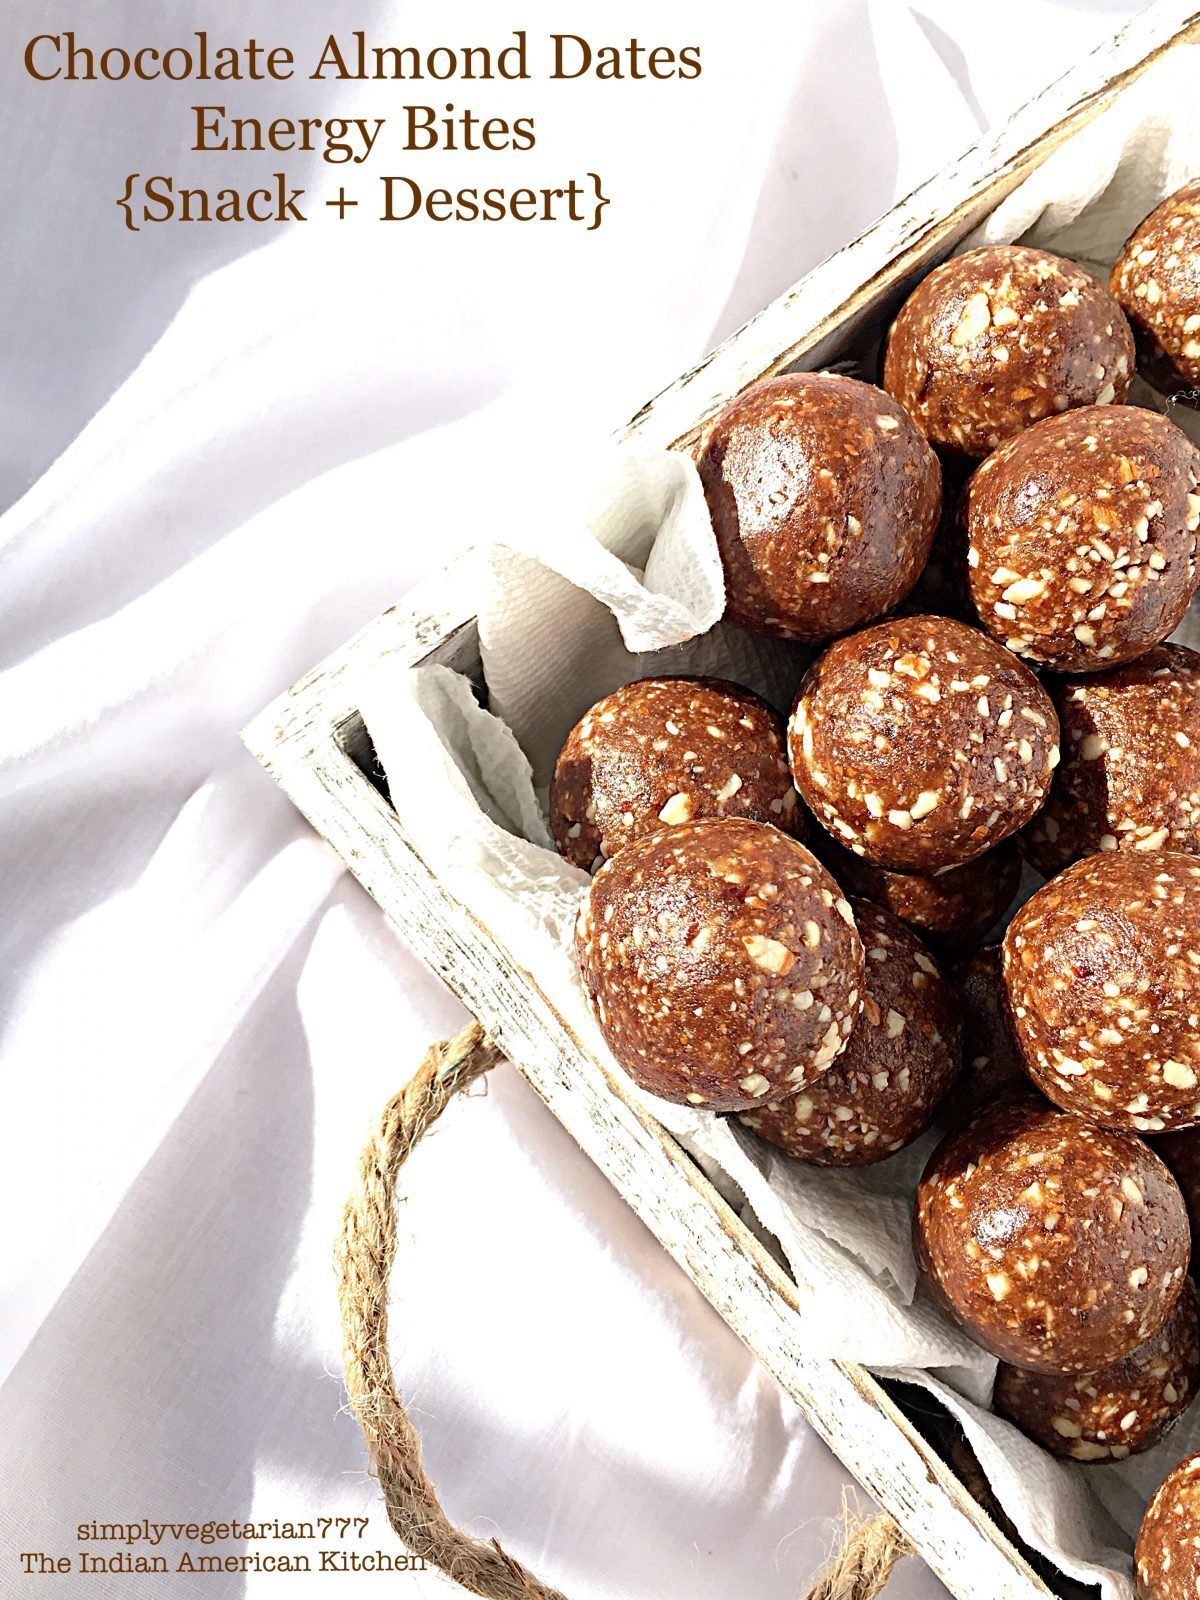 Easy Quick Chocolate Almond Dates Energy Bites – 4 Ingredients Recipe